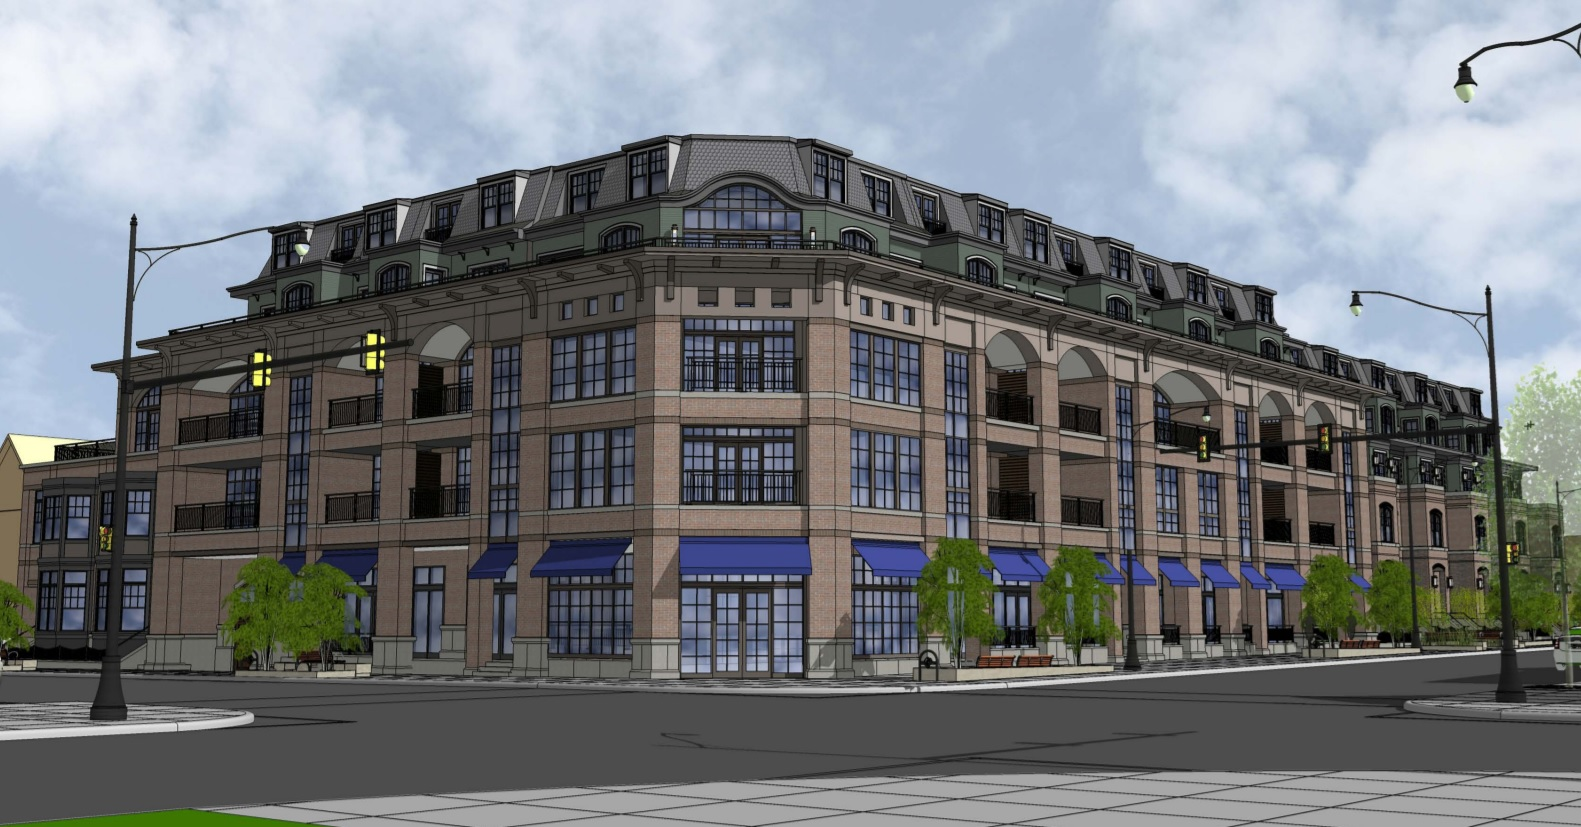 Renderings of the proposed development at Elmwood and Forest avenues.